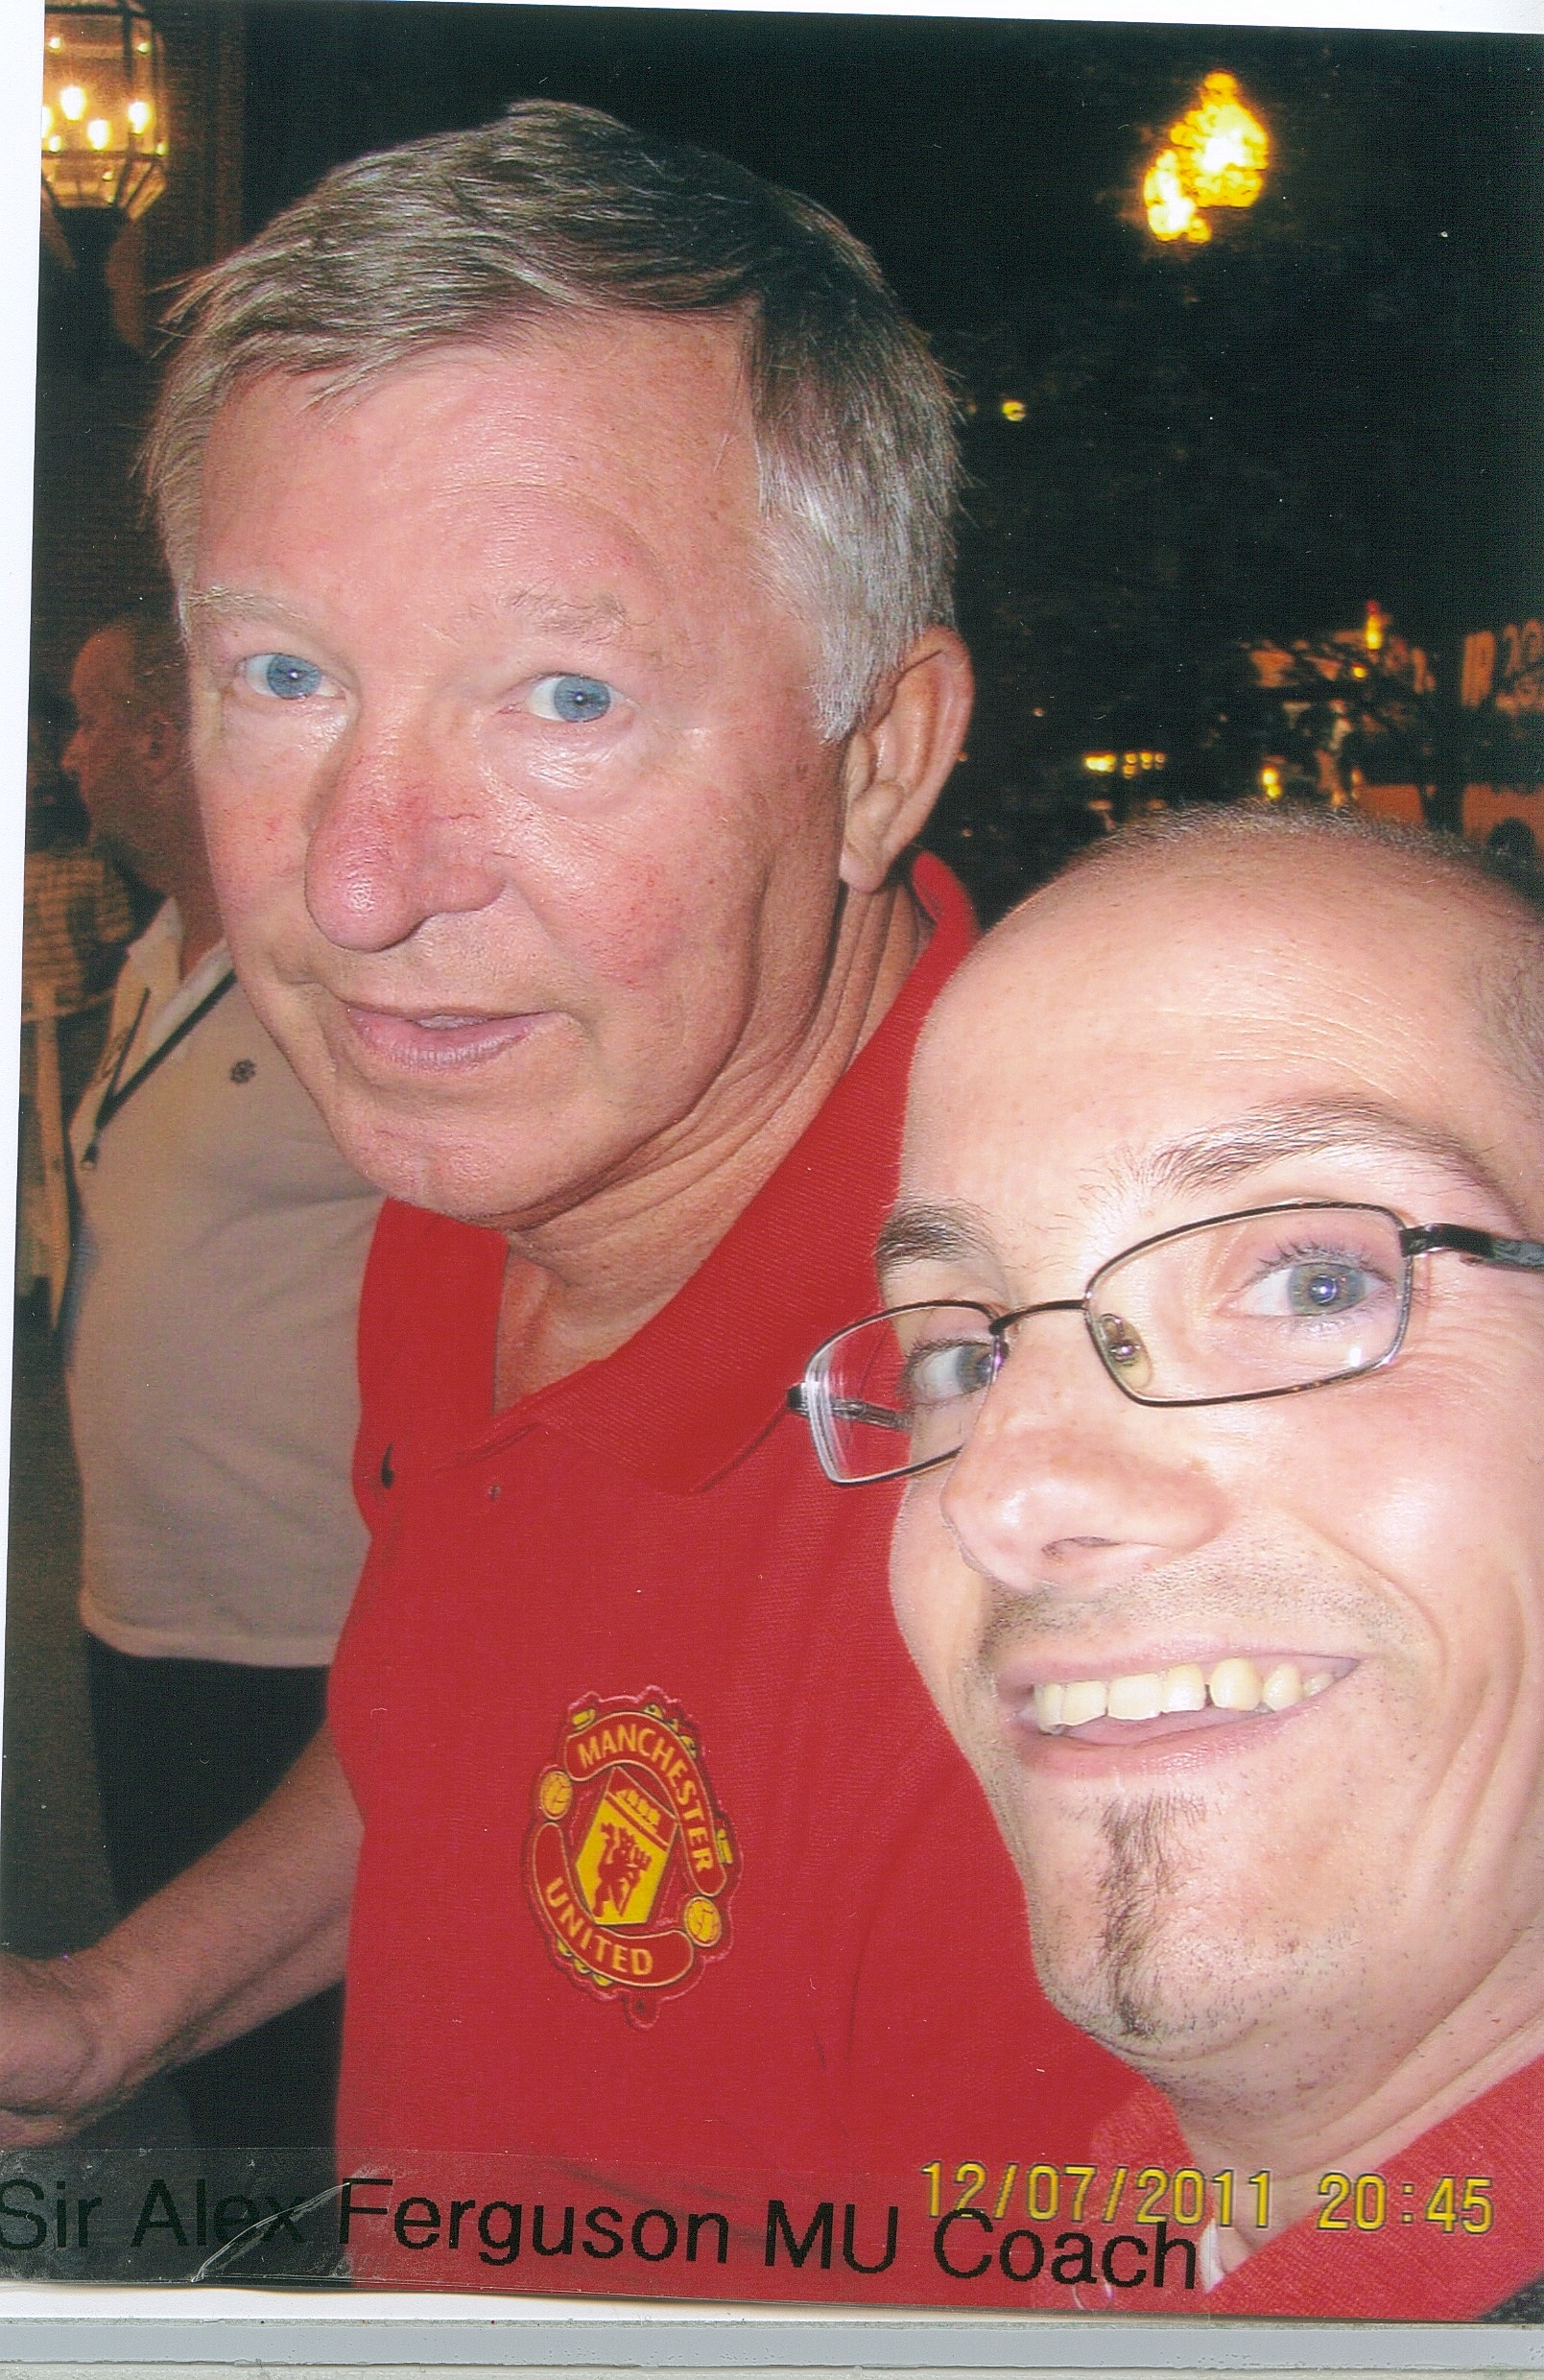 Sir Alex Ferguson, MU Coach